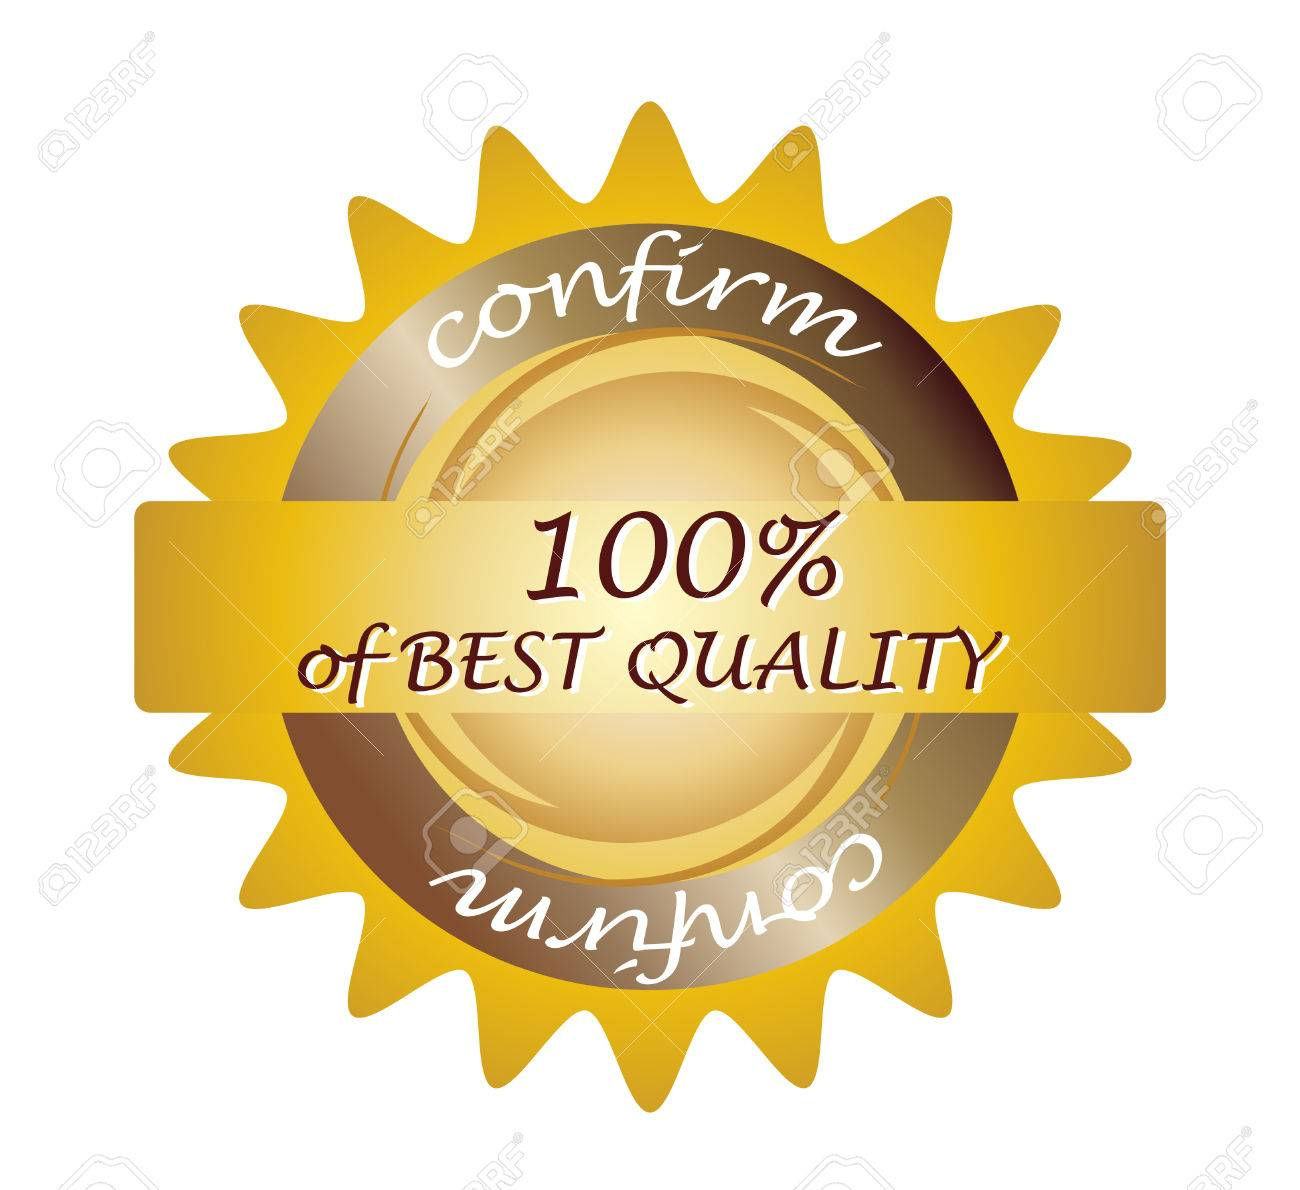 Seal 100% Quality; Clip-art Royalty Free Cliparts, Vectors, And ...